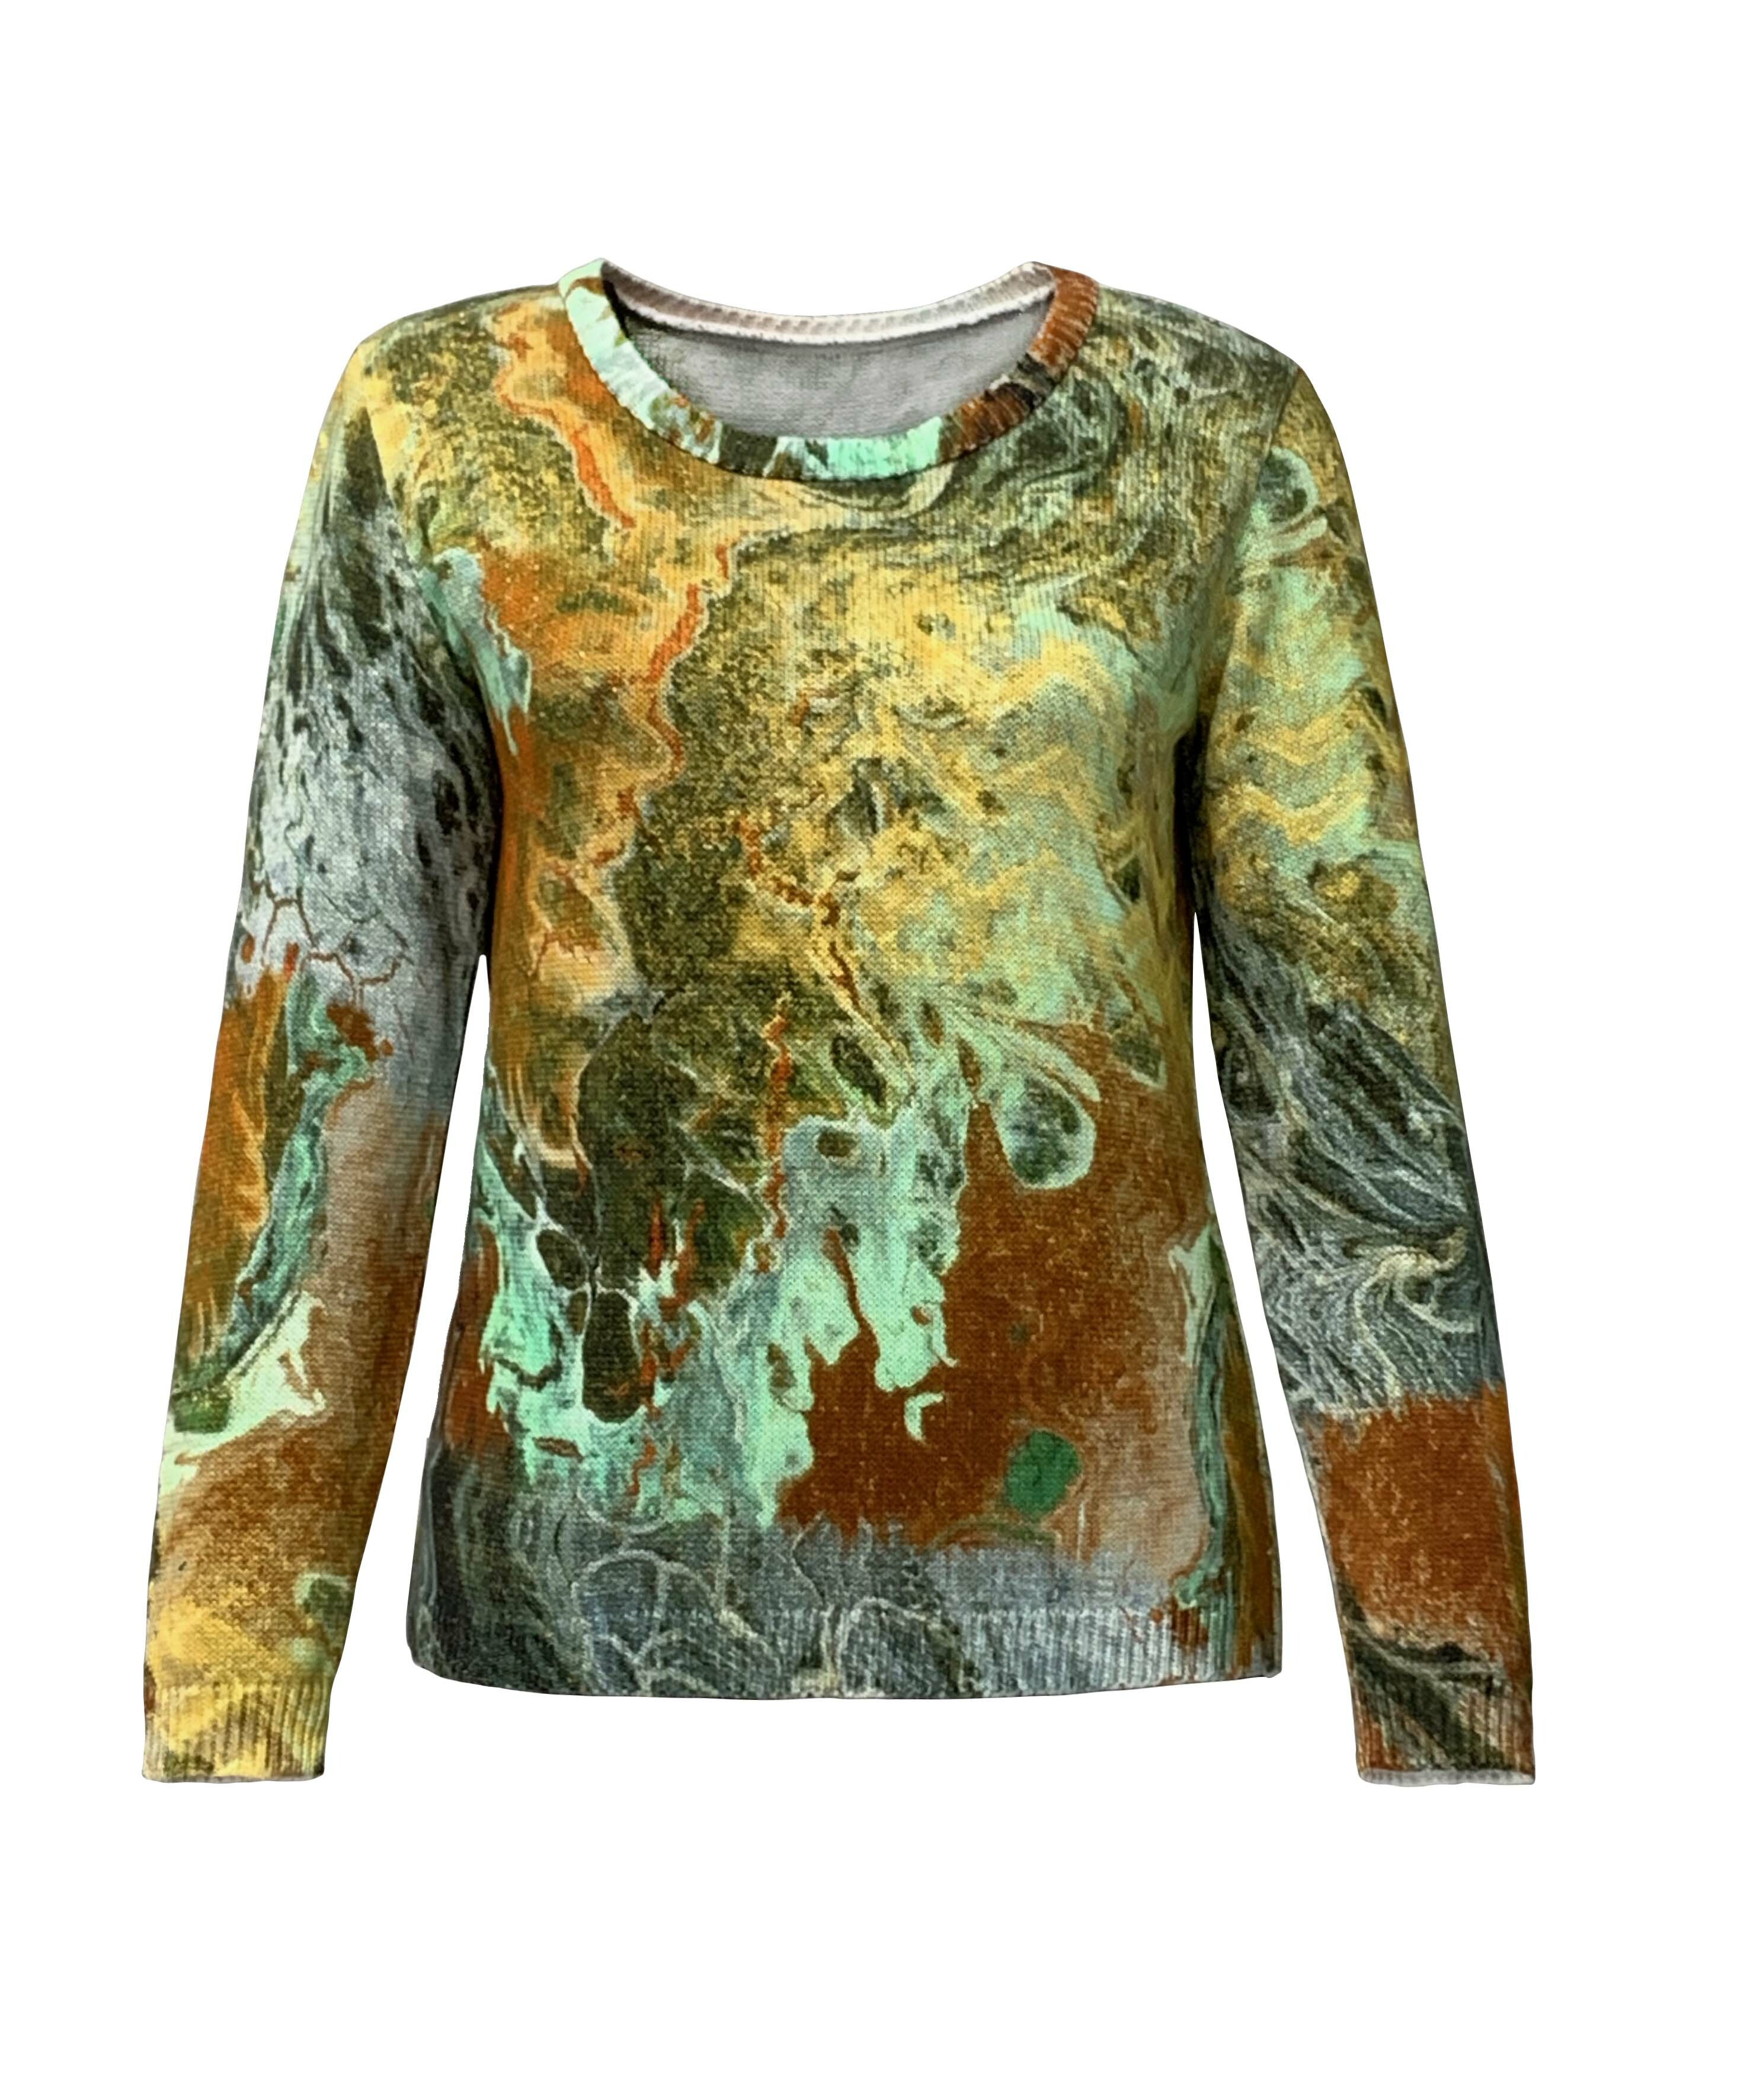 Simply Art Dolcezza: Royal Egyptian Nile Emeralds Abstract Art Sweater Dolcezza_Simply_Art_59124